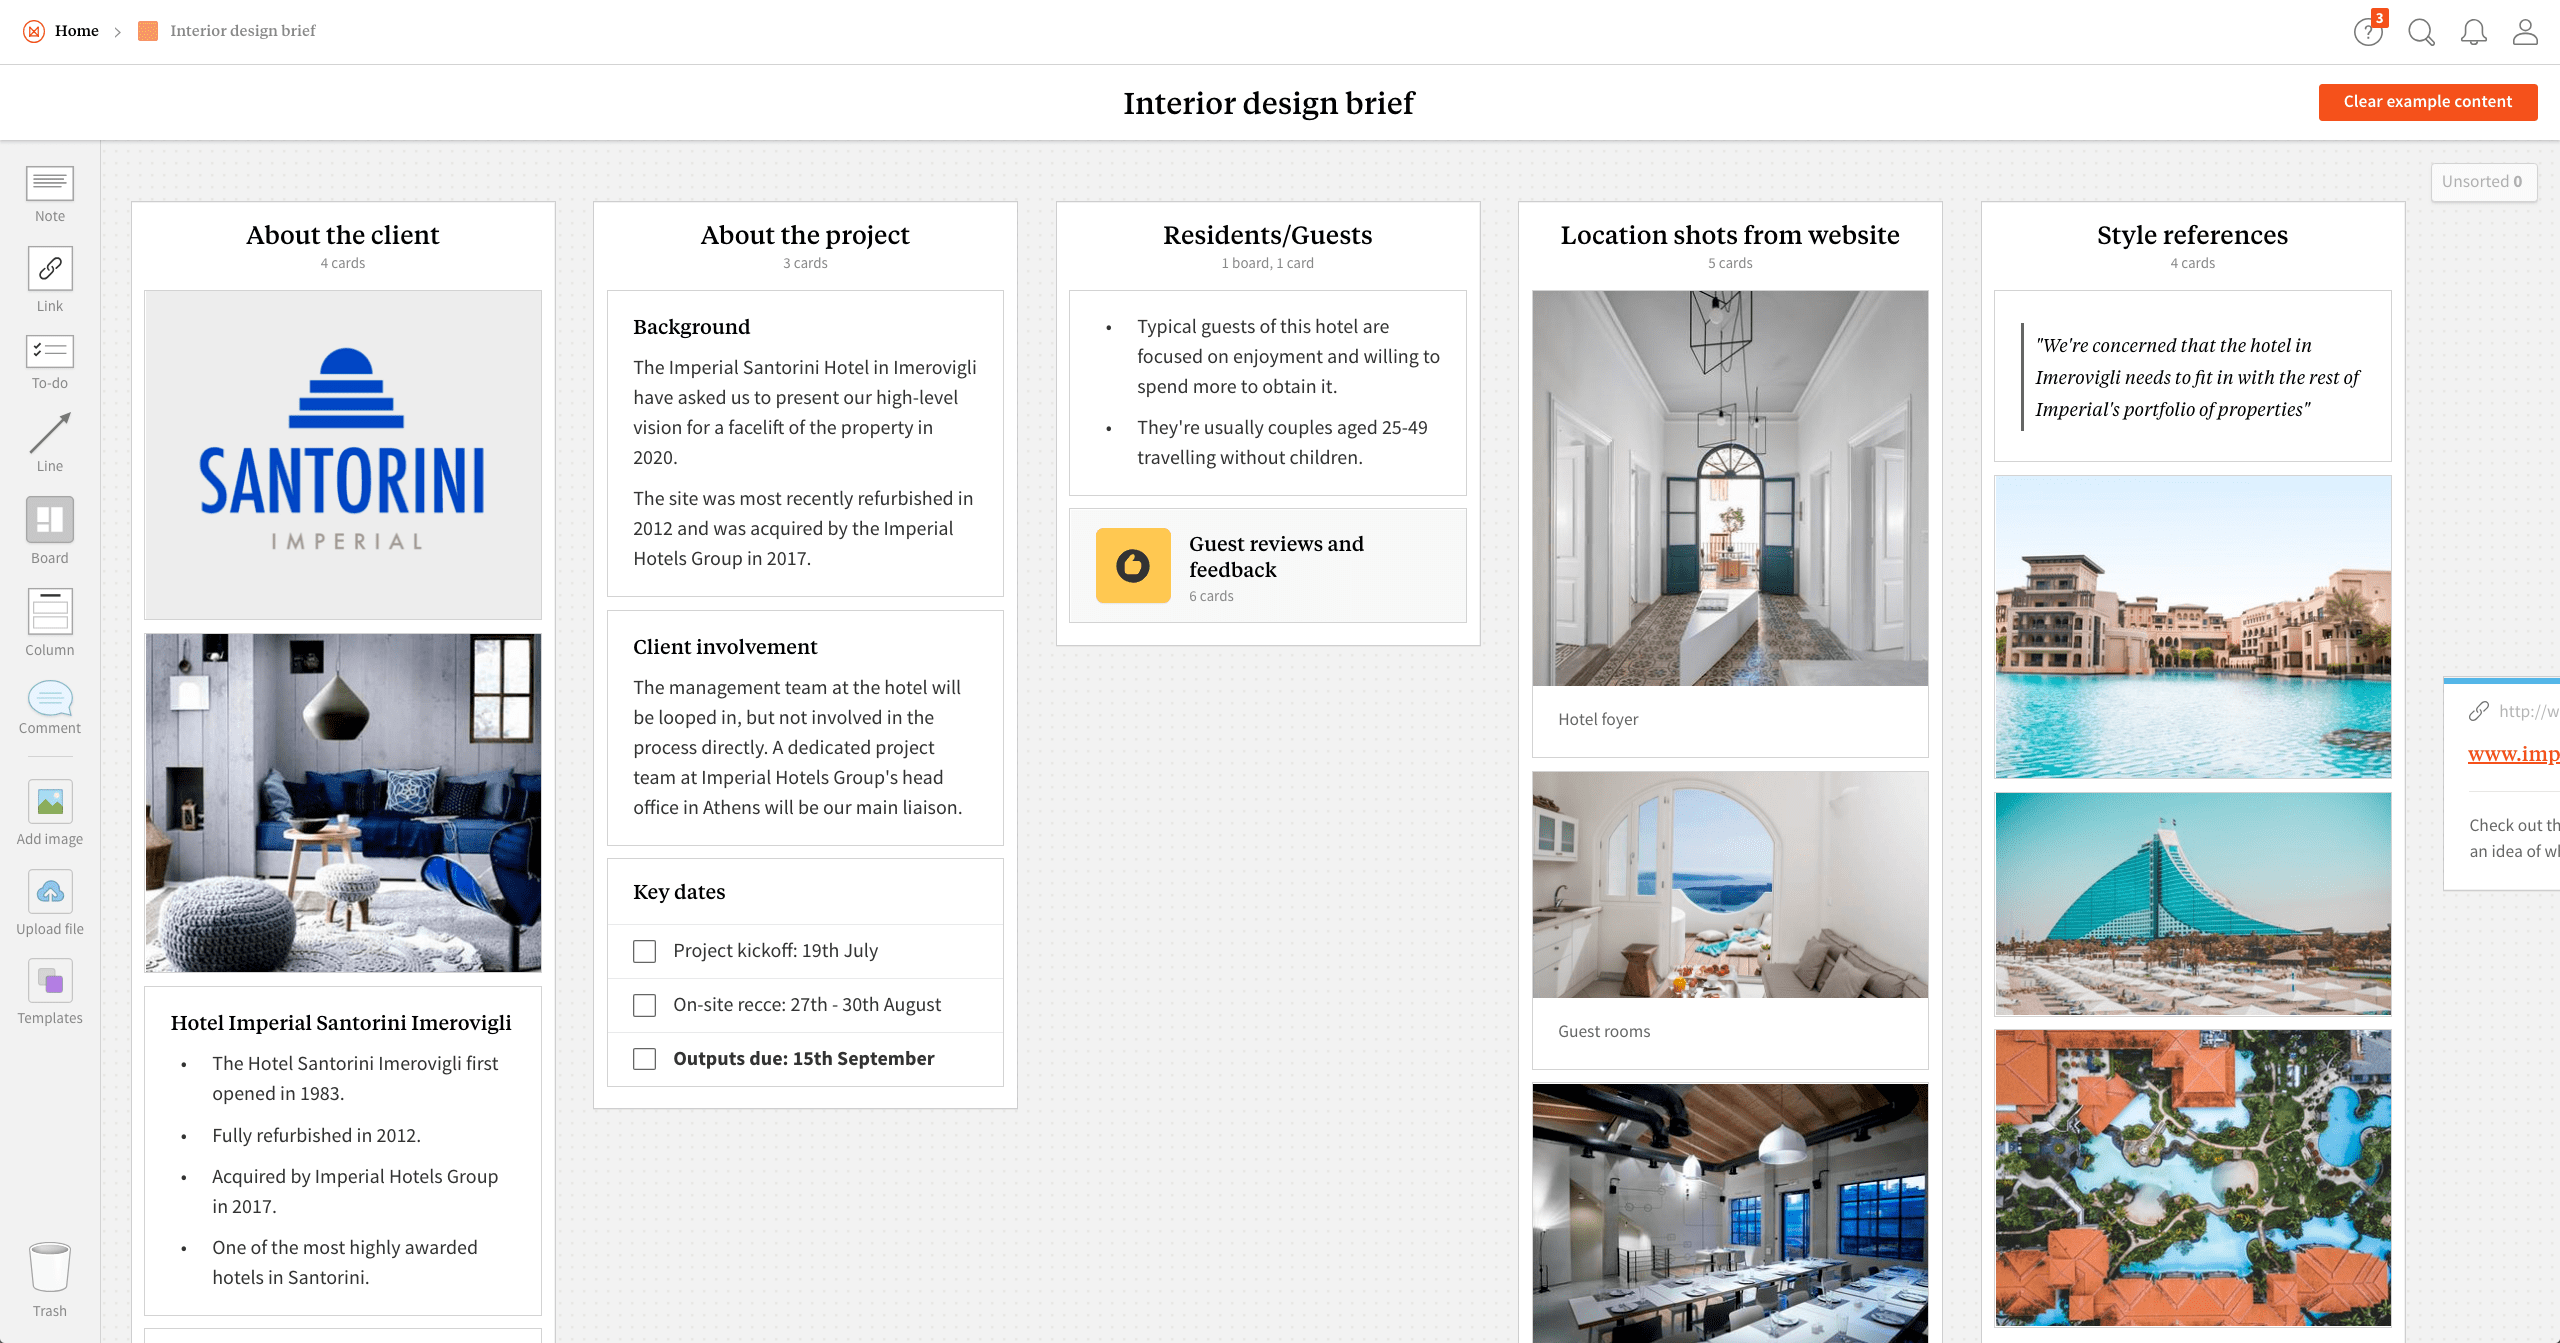 Interior Design Brief Template & Example Project - Milanote